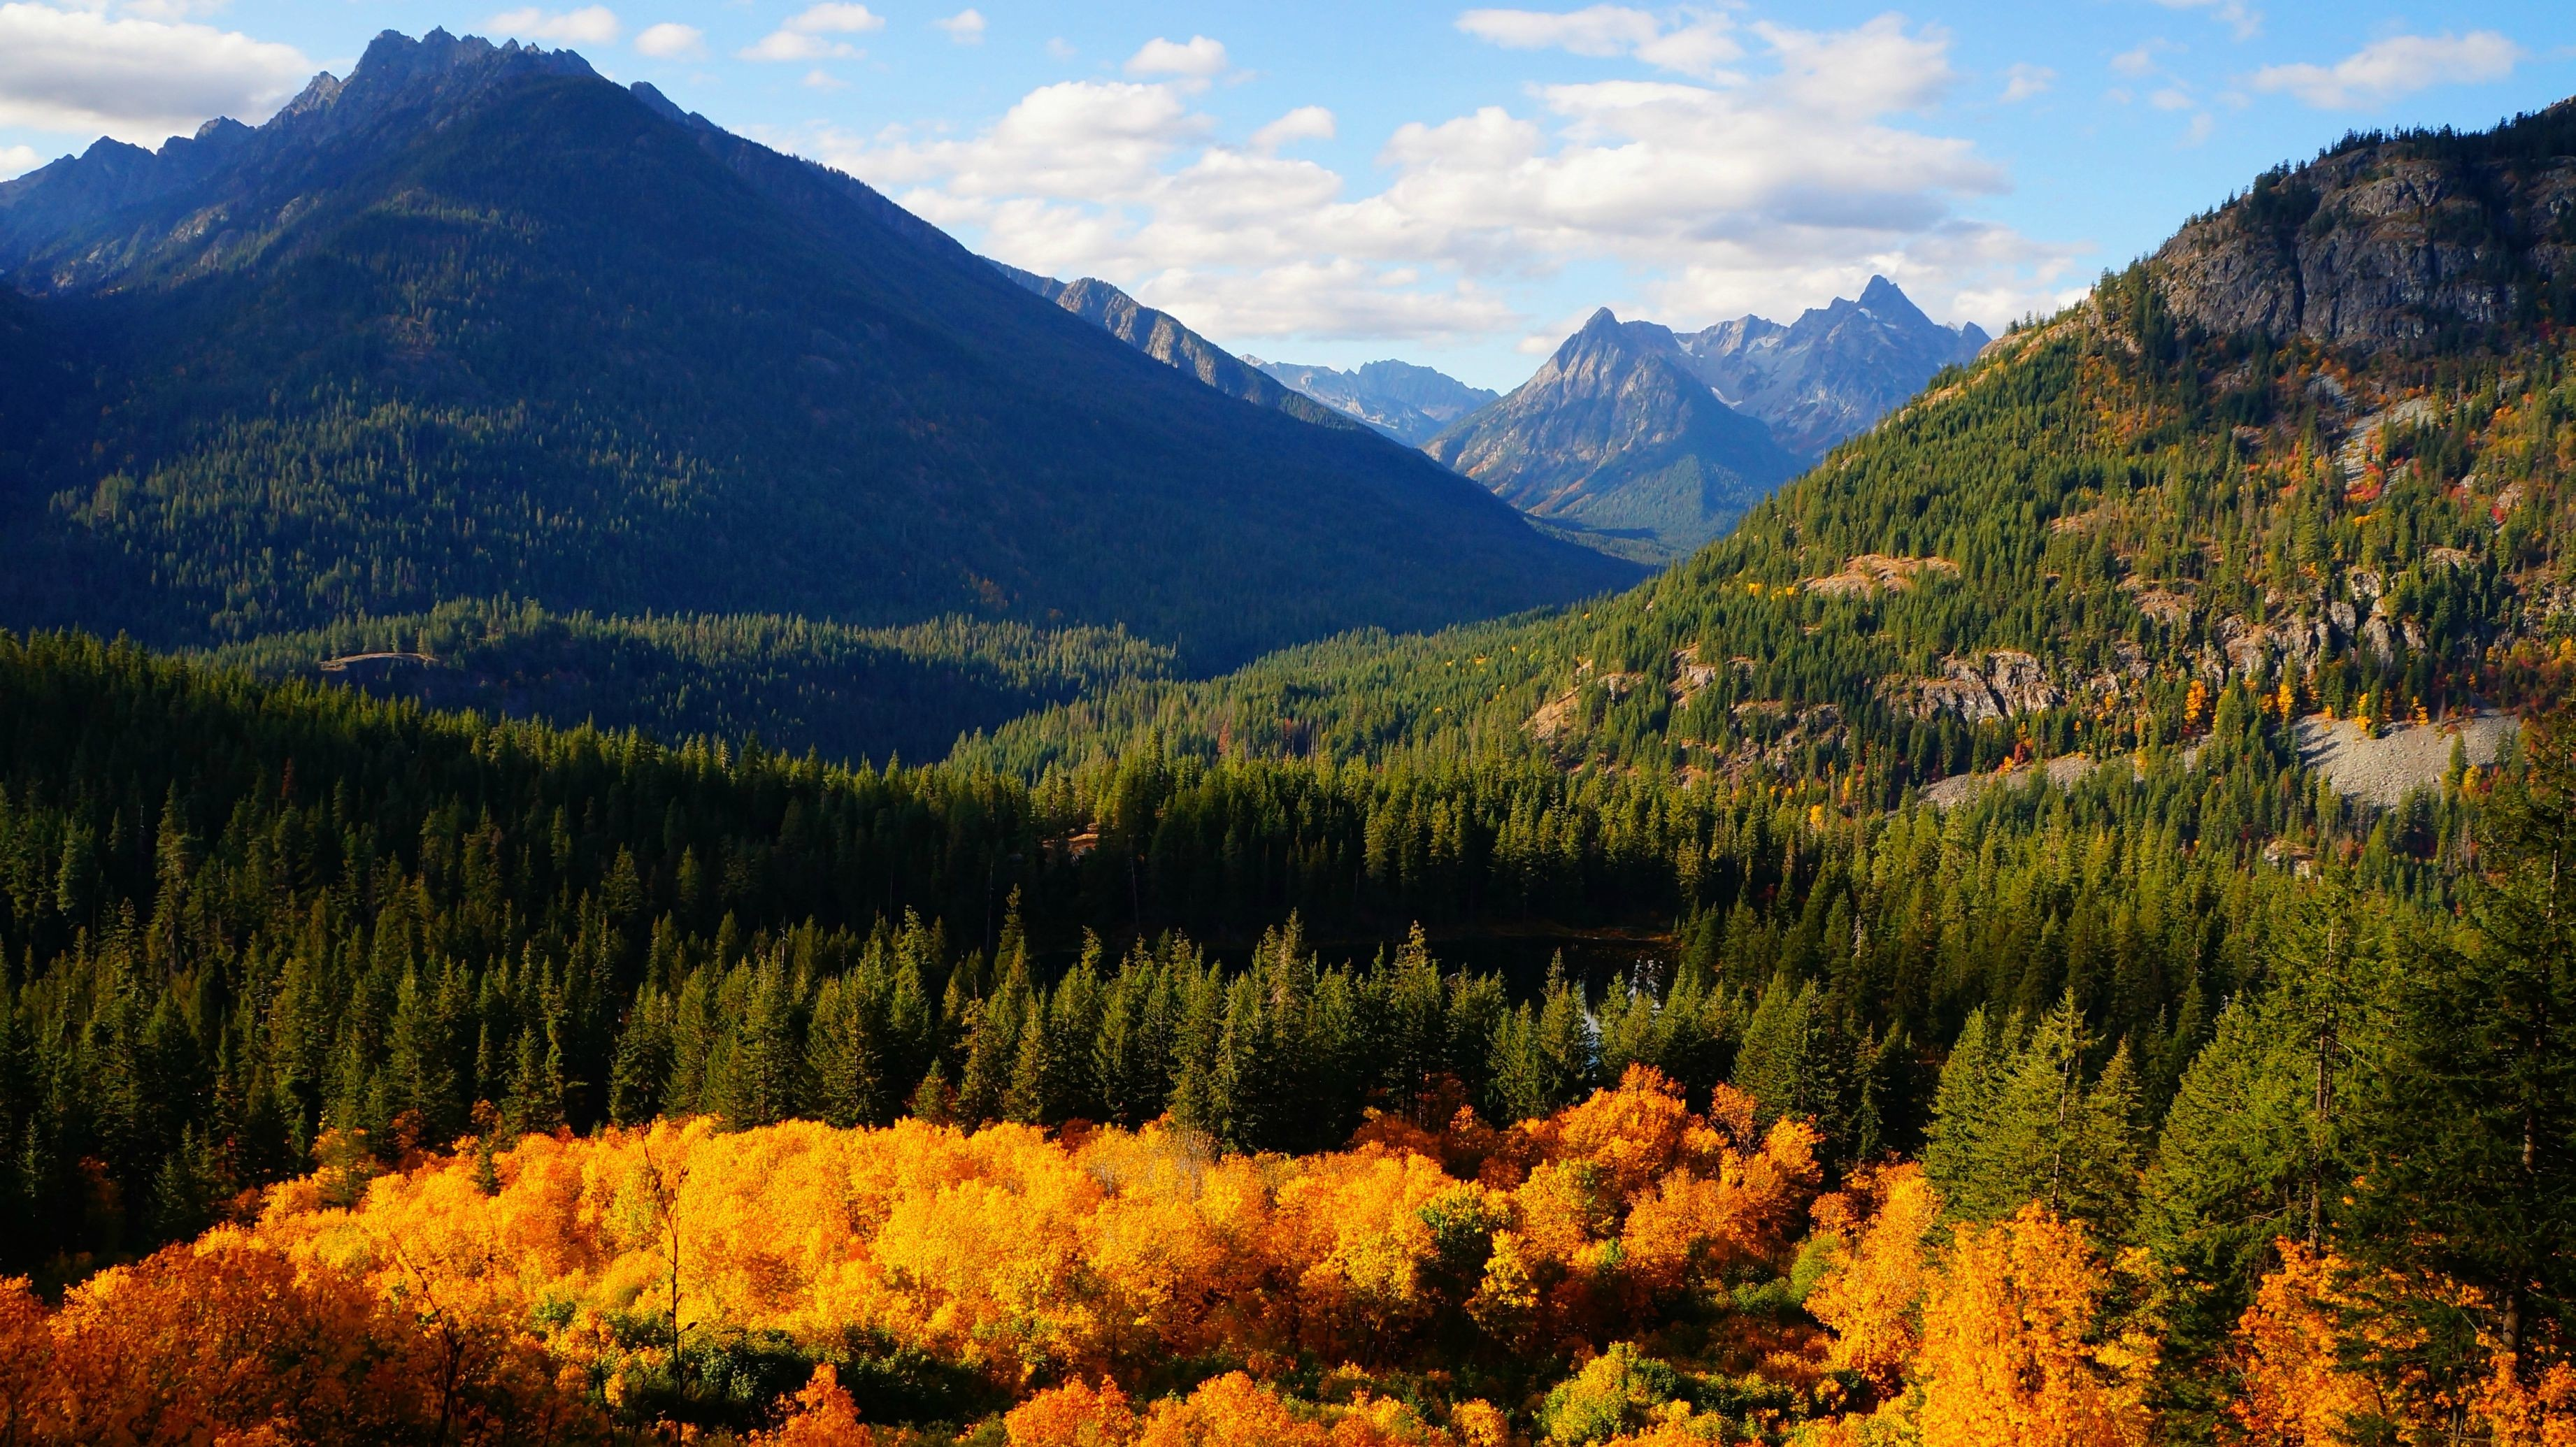 Fall Cell Phone Wallpaper Pacific Northwest Wallpaper 183 ①